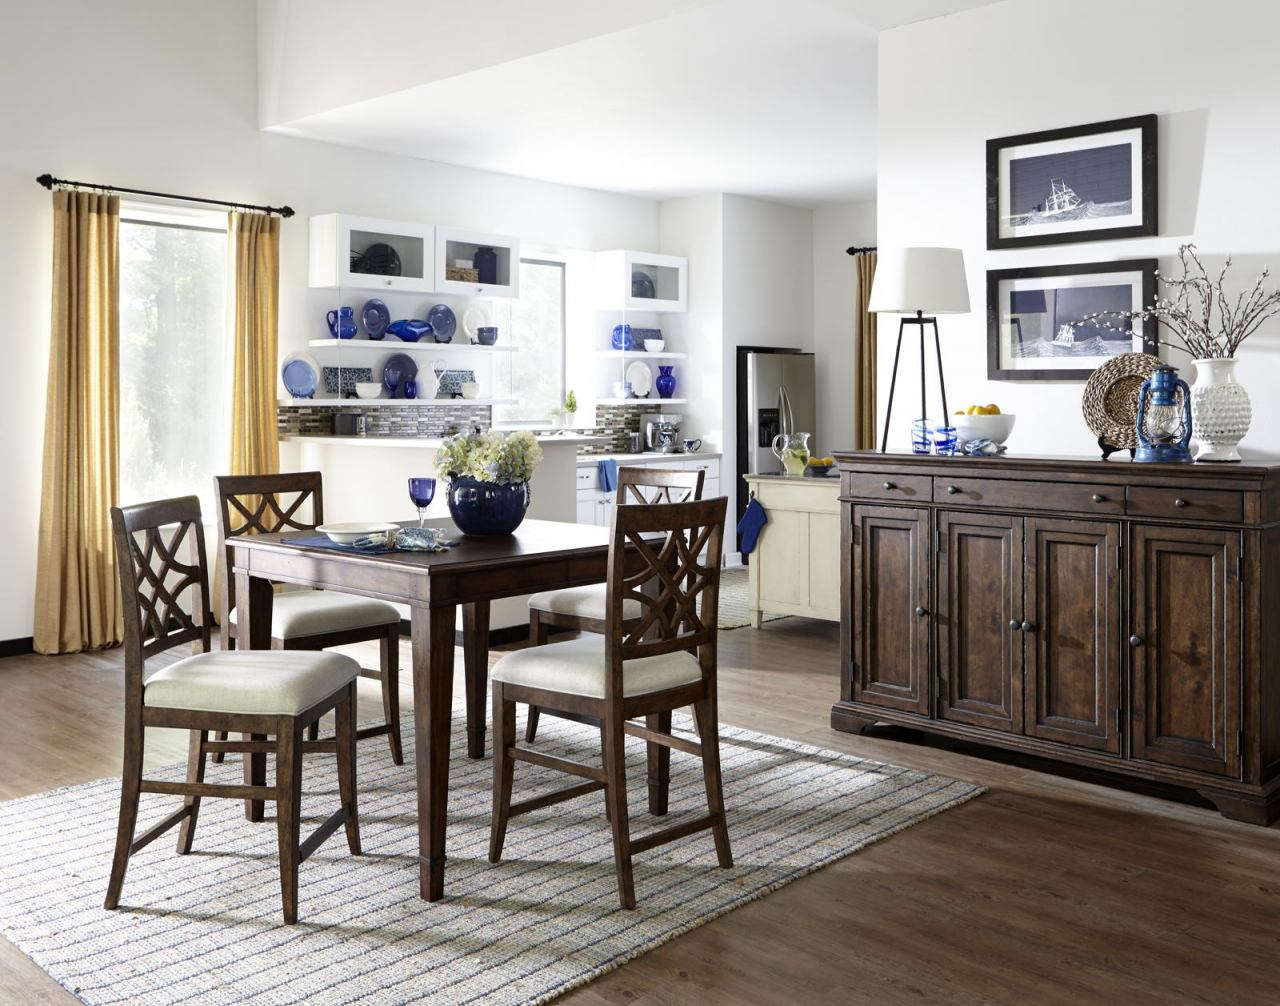 Fullsize Of Trisha Yearwood Furniture